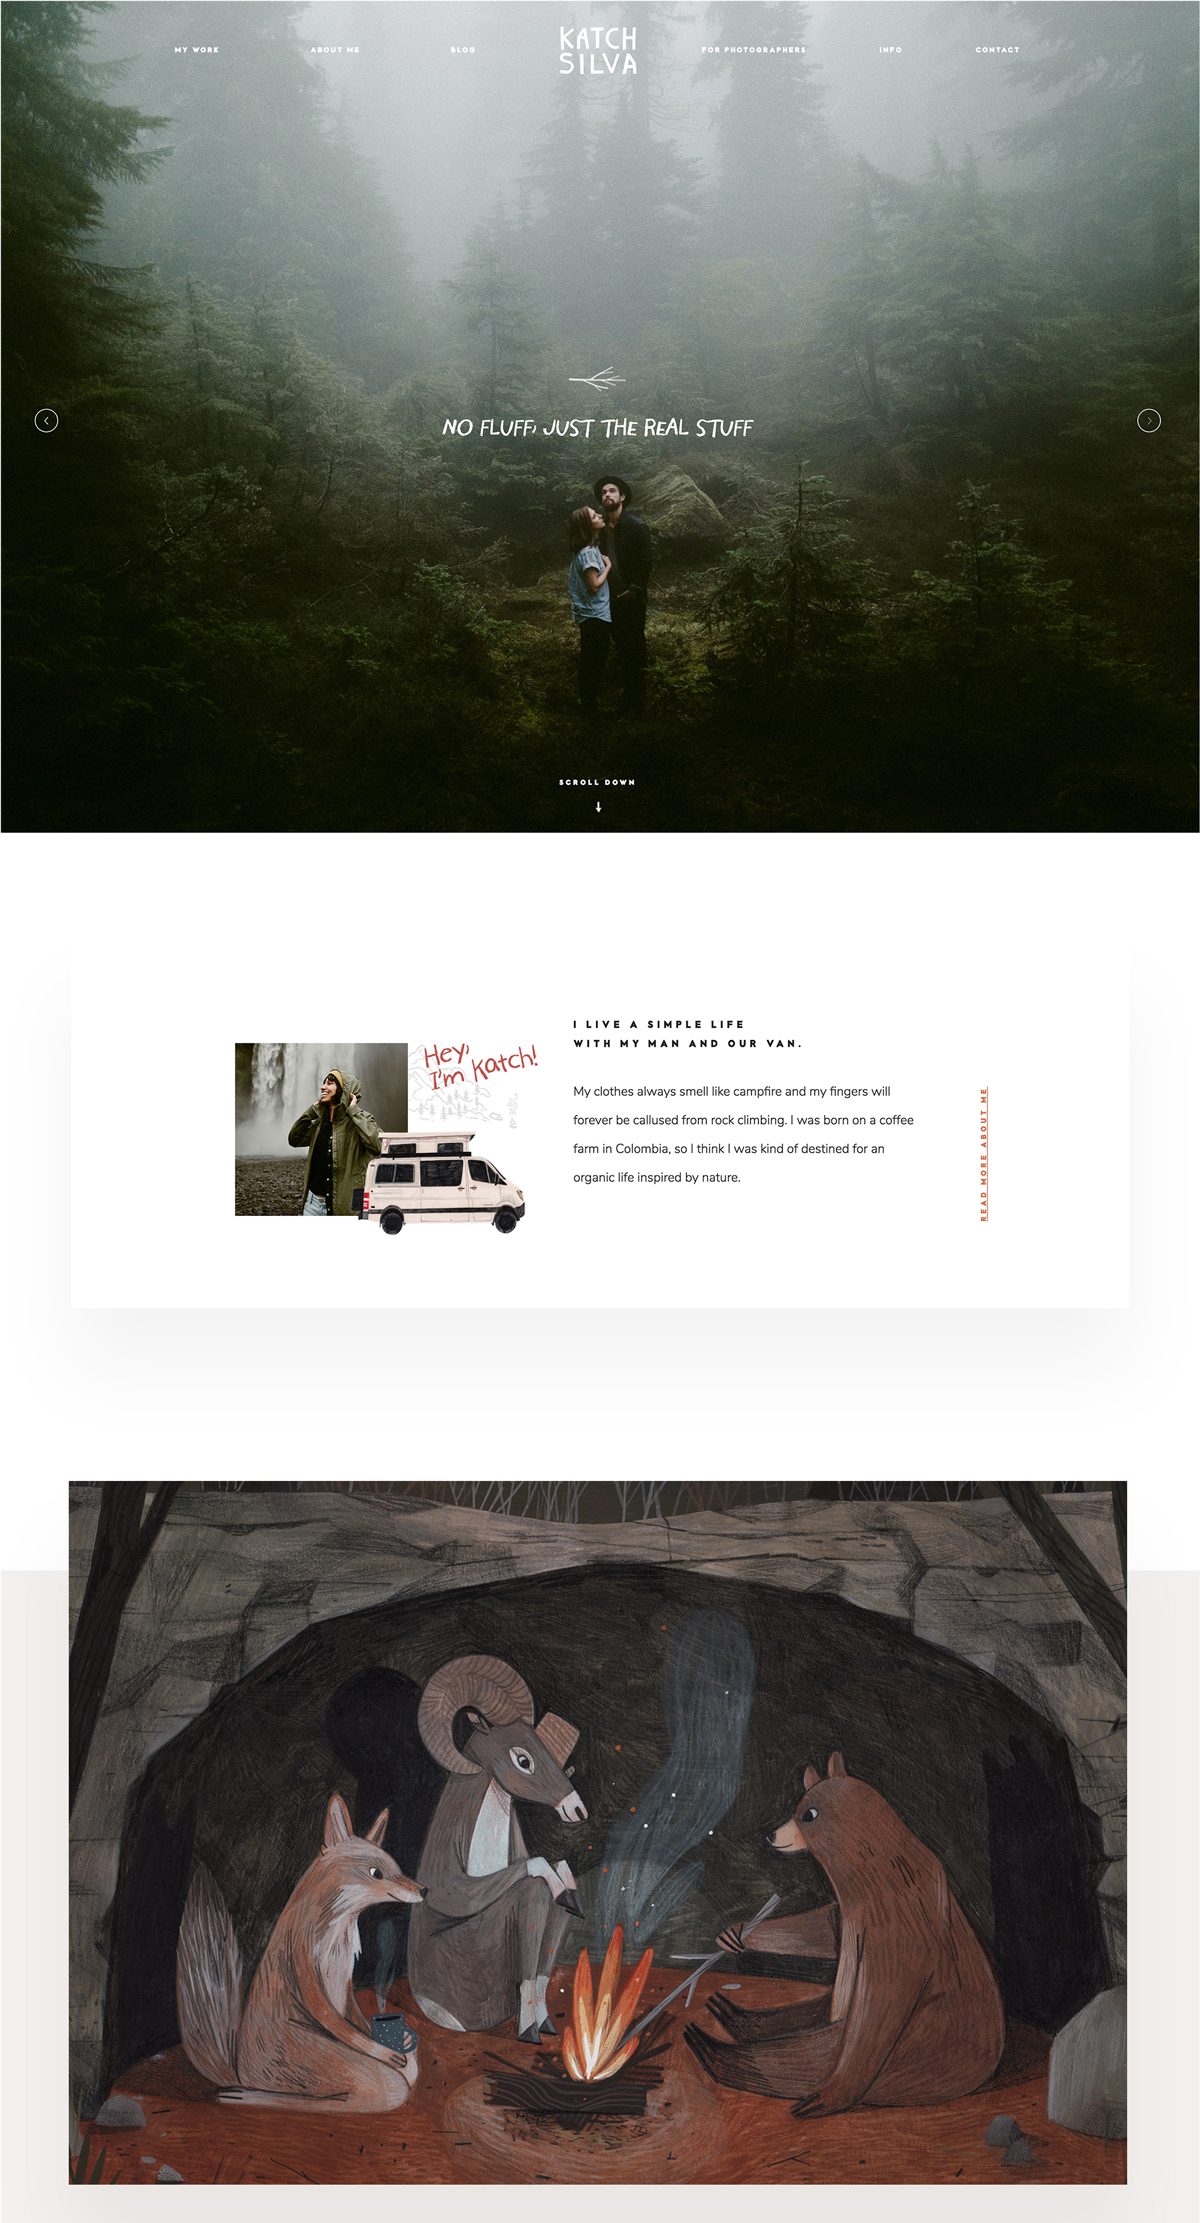 Katch Silva photography: Custom Website Design 3